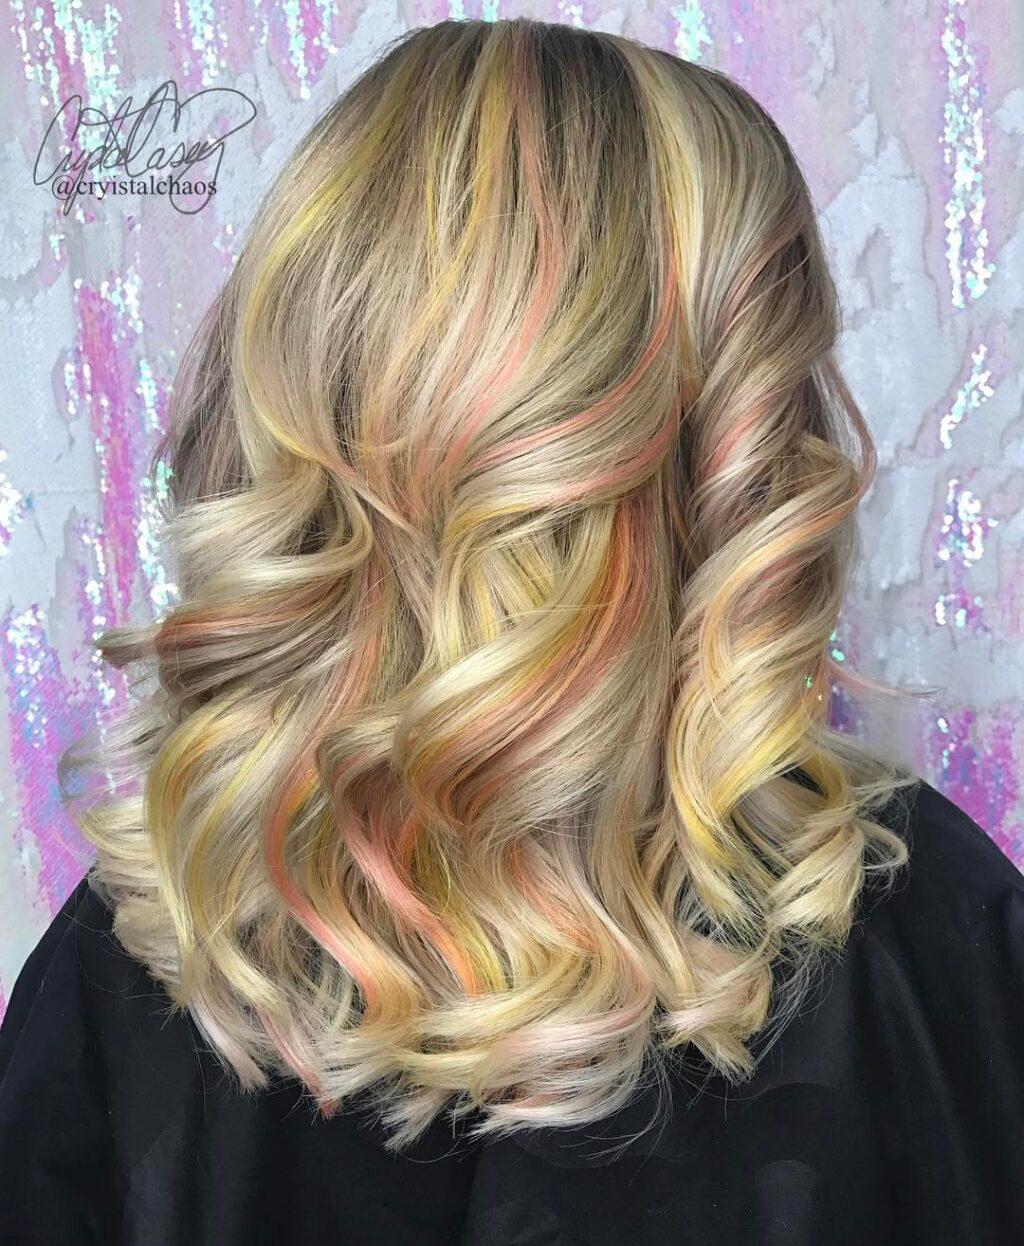 Blonde oil slick hair